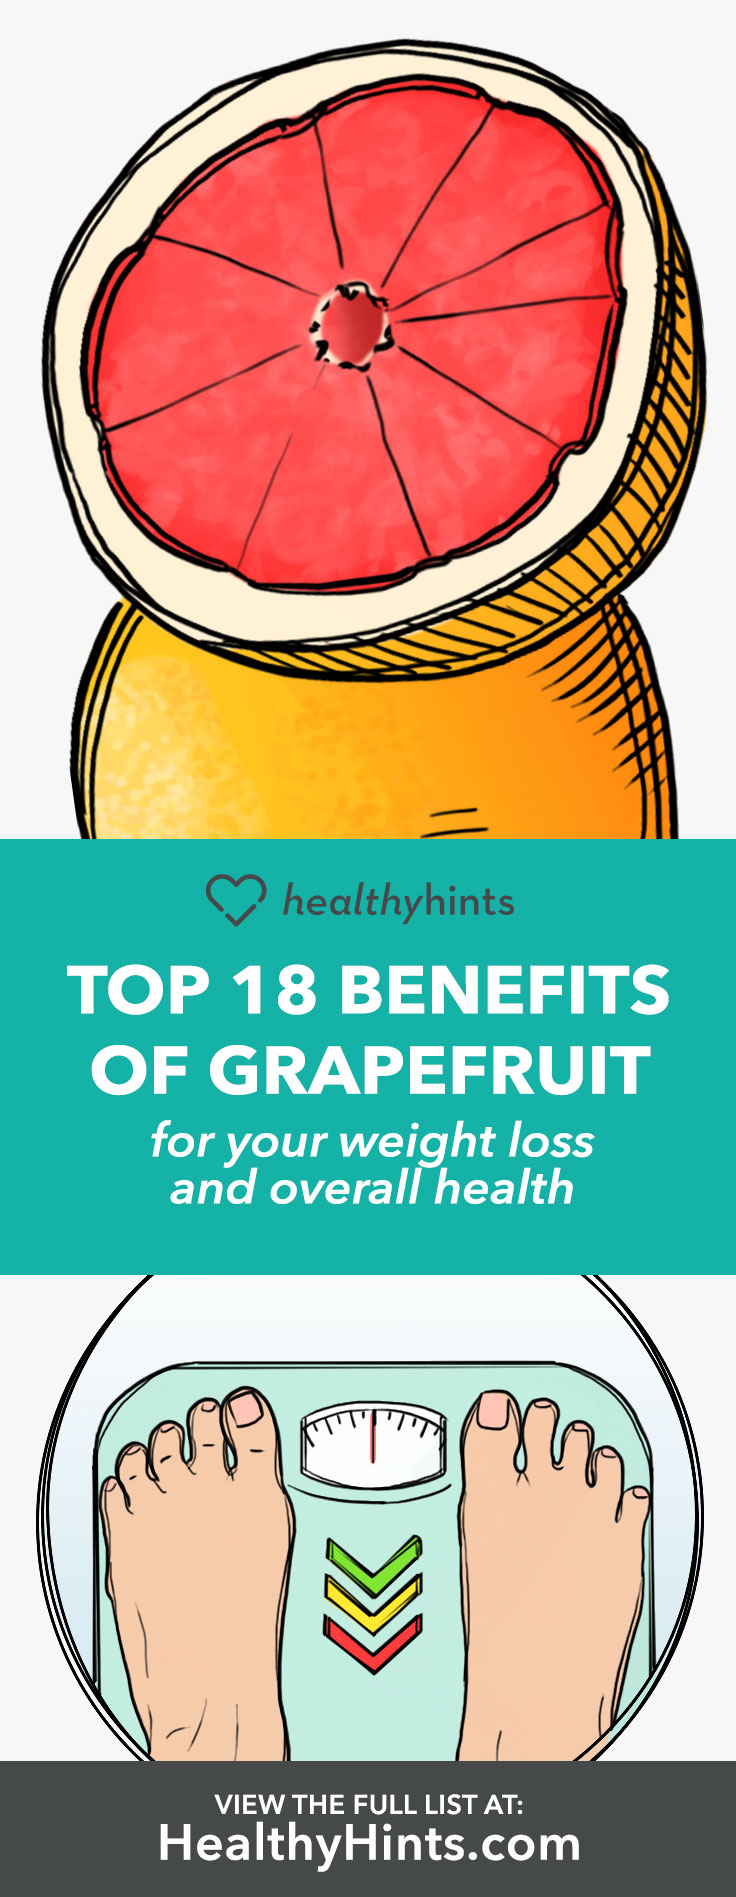 The benefits of grapefruit for weight loss and overall health.